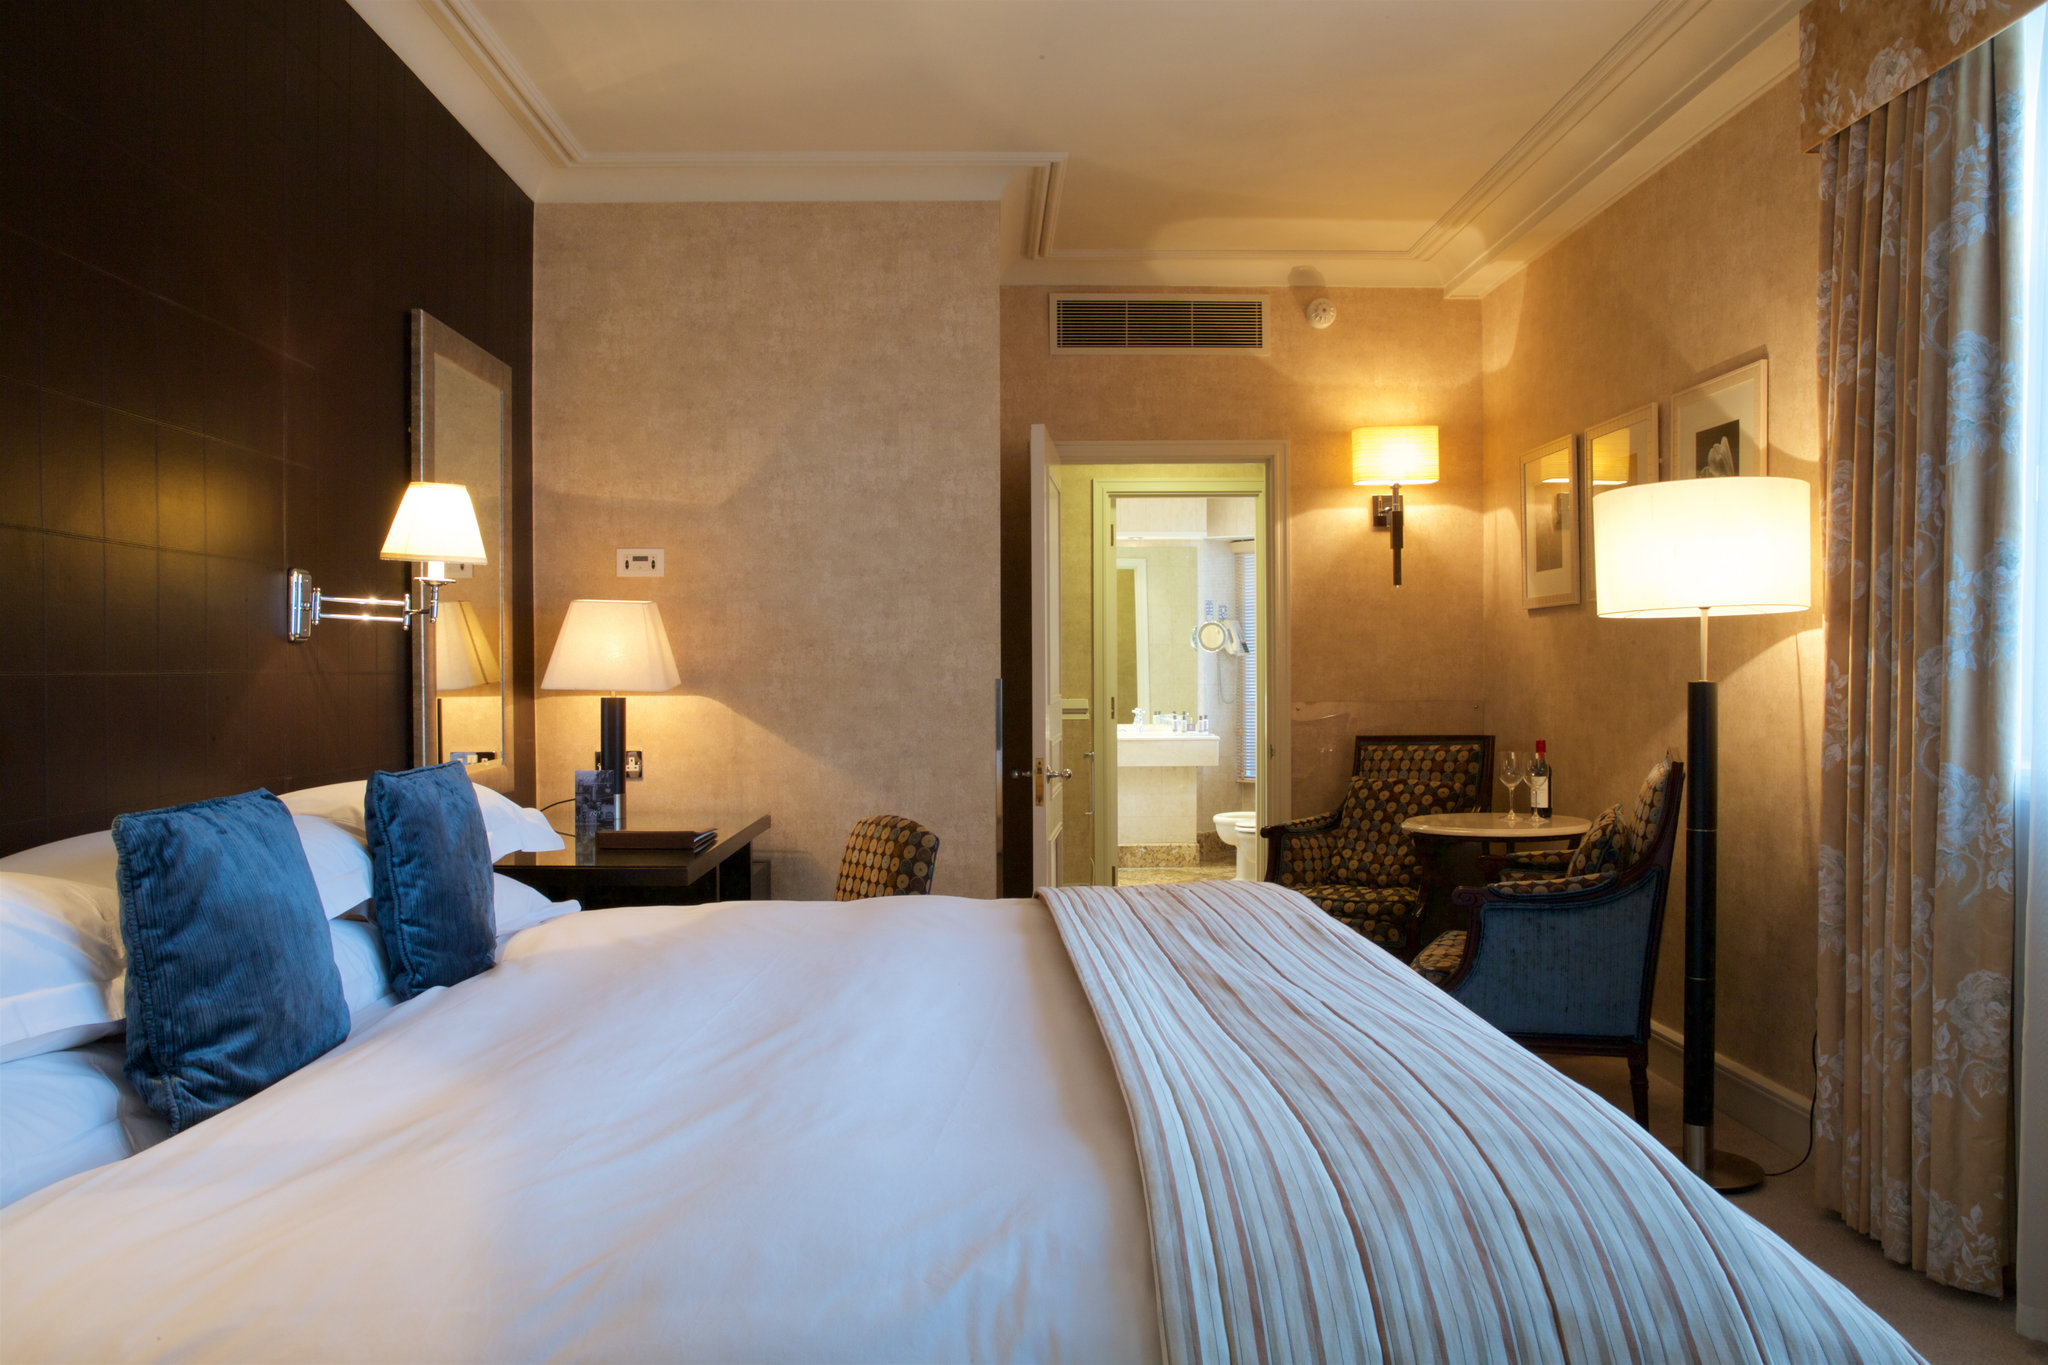 Bed And Breakfast Romford The Chester Grosvenor Luxury Hotel In Chester United Kingdom Slh